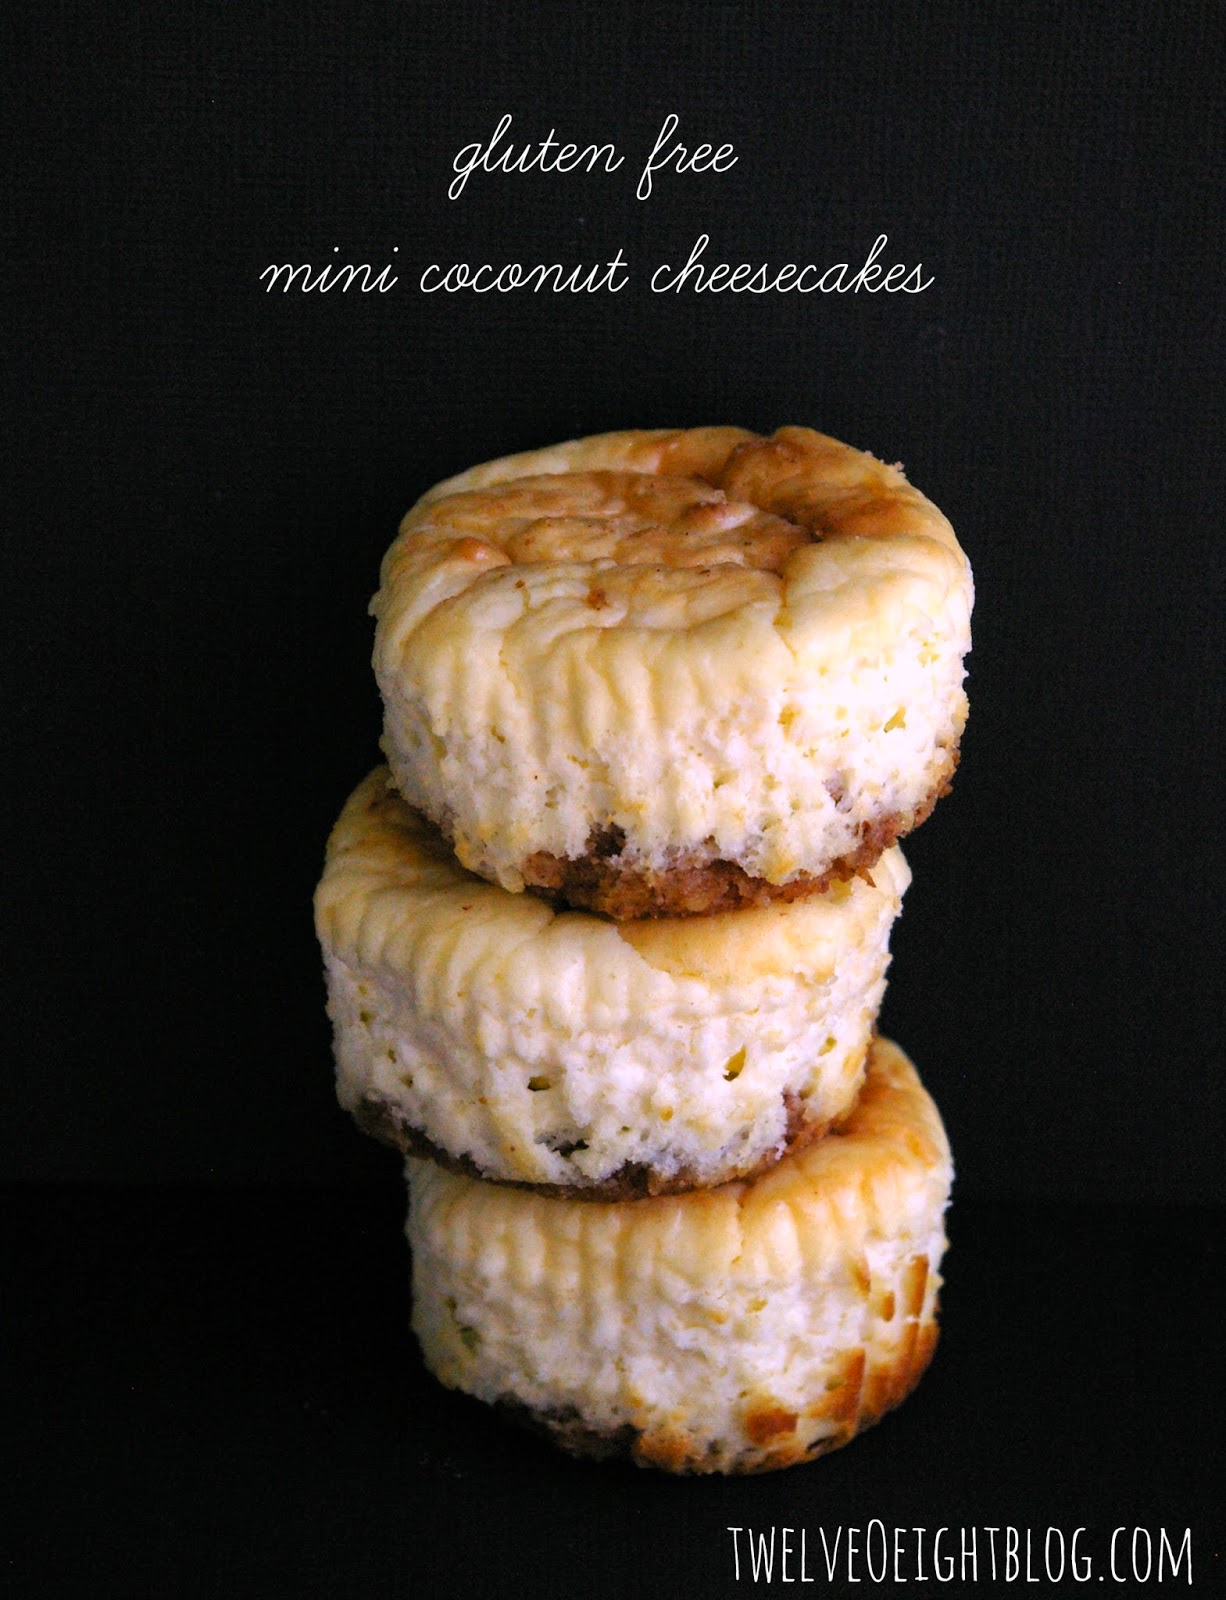 Low Carb Recipes: Mini Coconut Cheesecakes